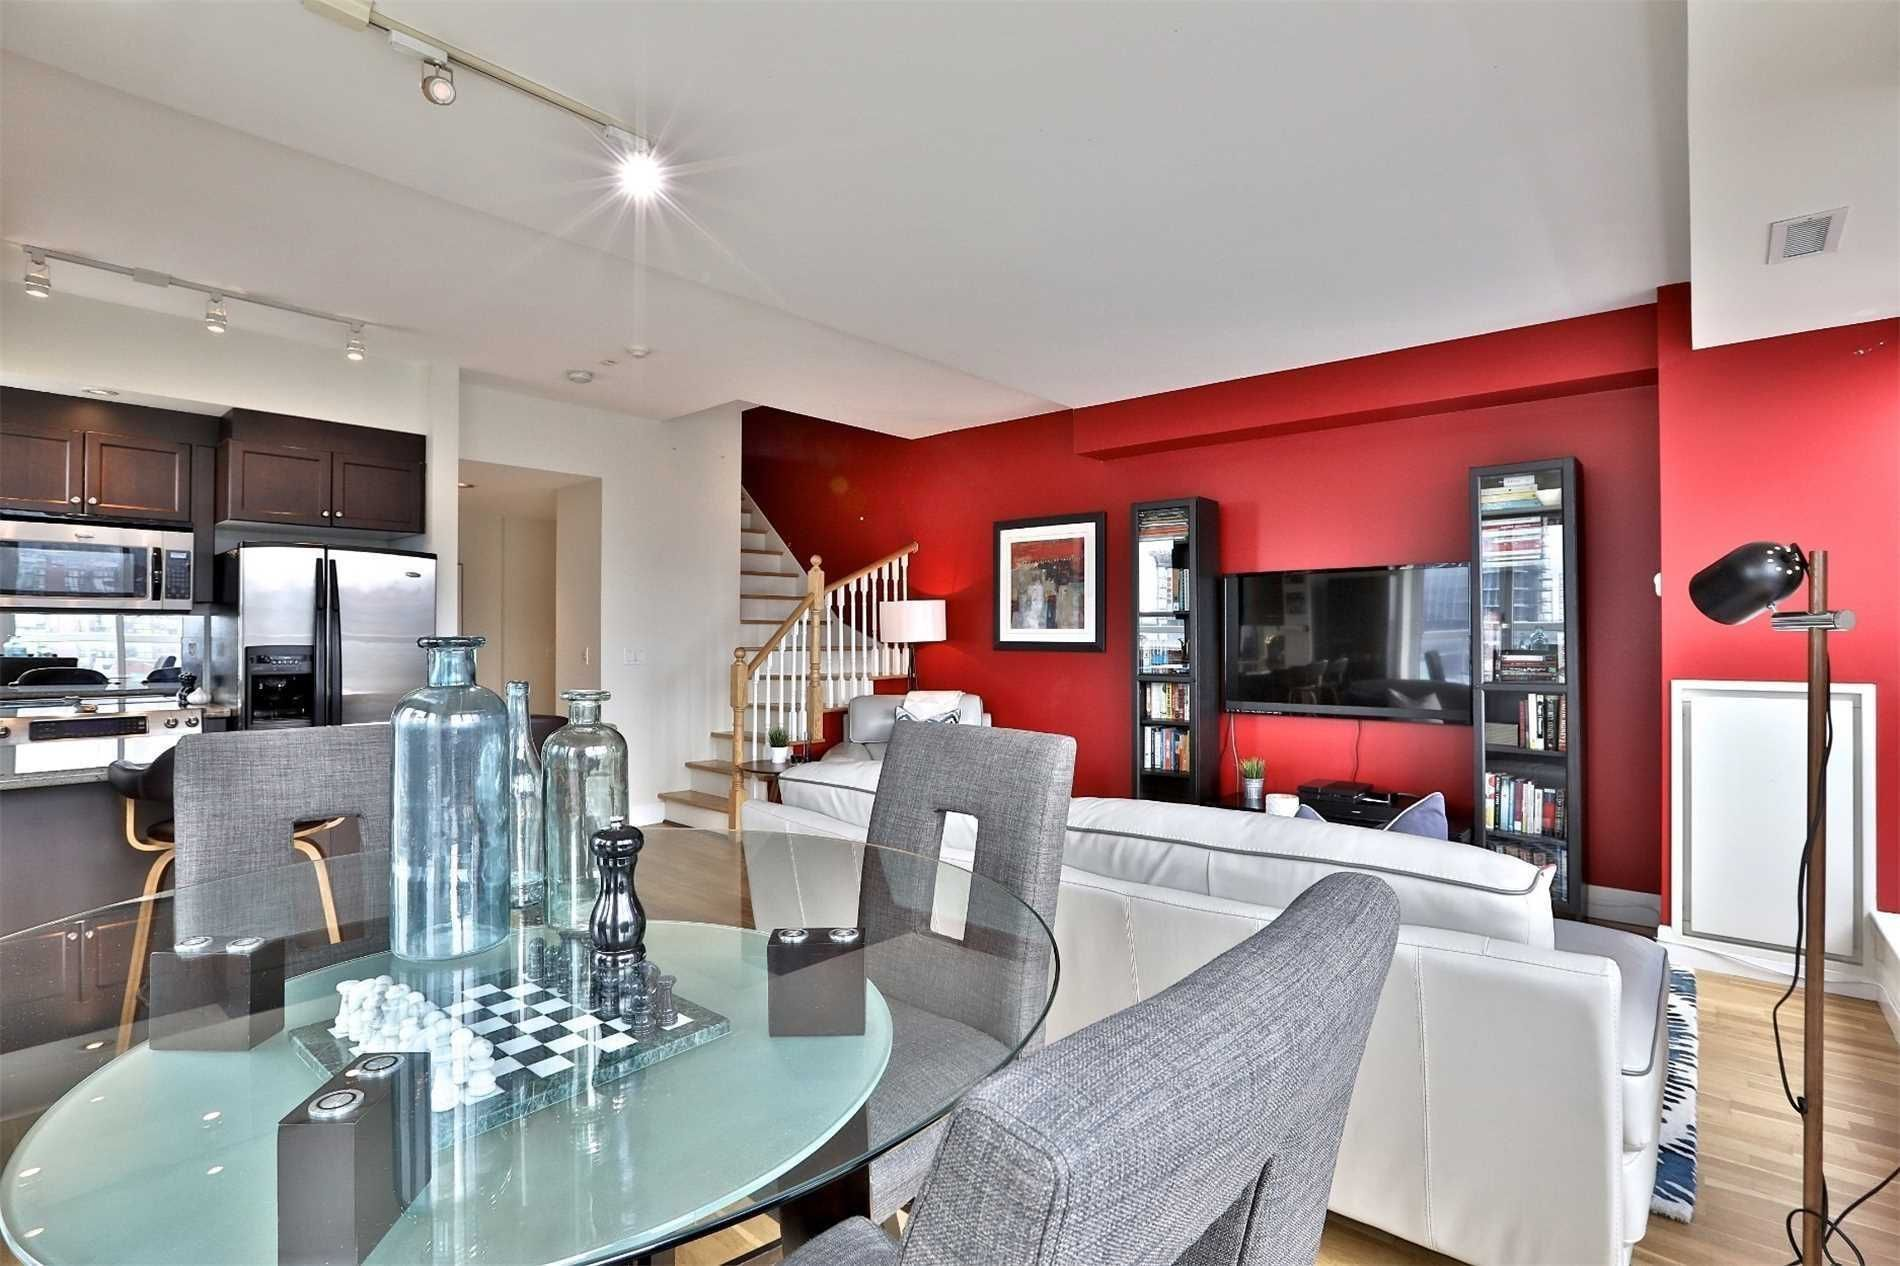 15 Stafford St, unit Ph04 for rent in Toronto - image #2